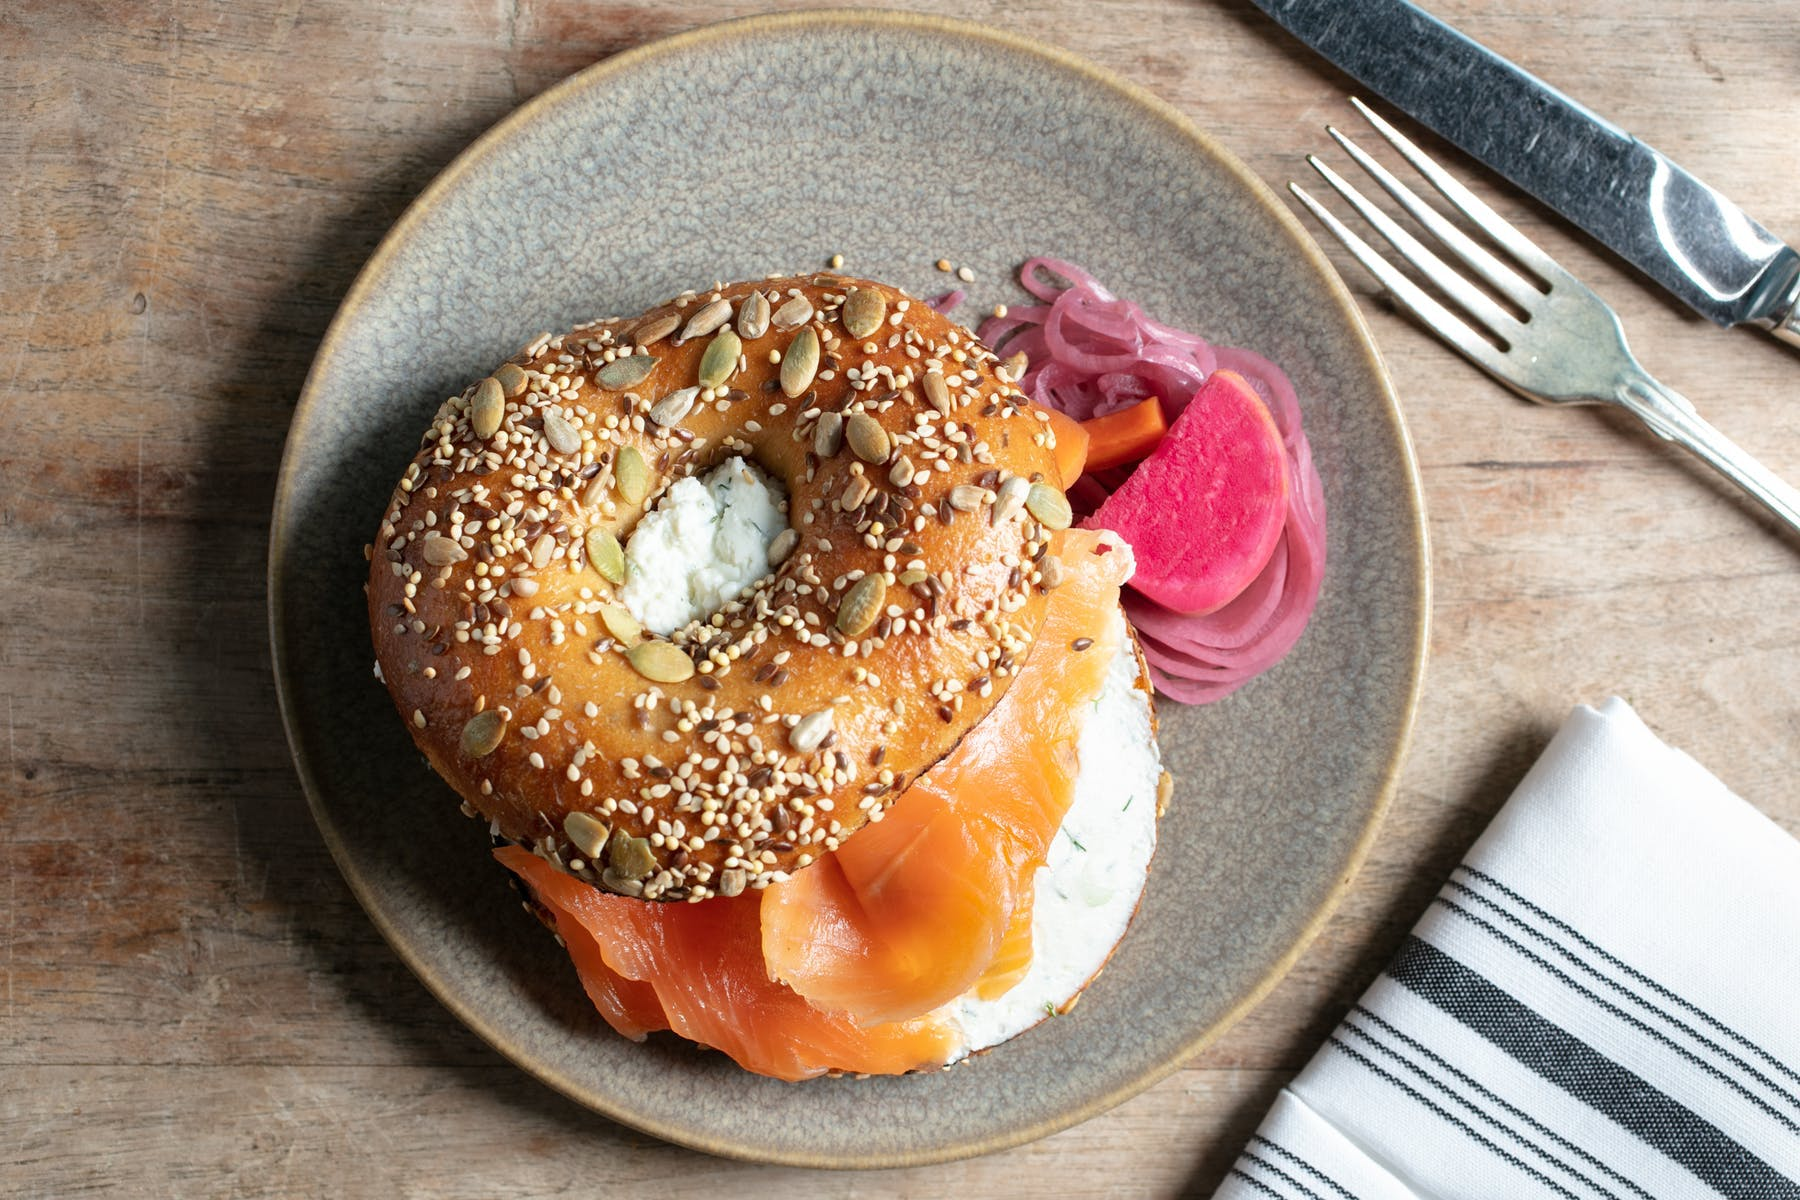 a BAGEL sitting on top of a wooden table